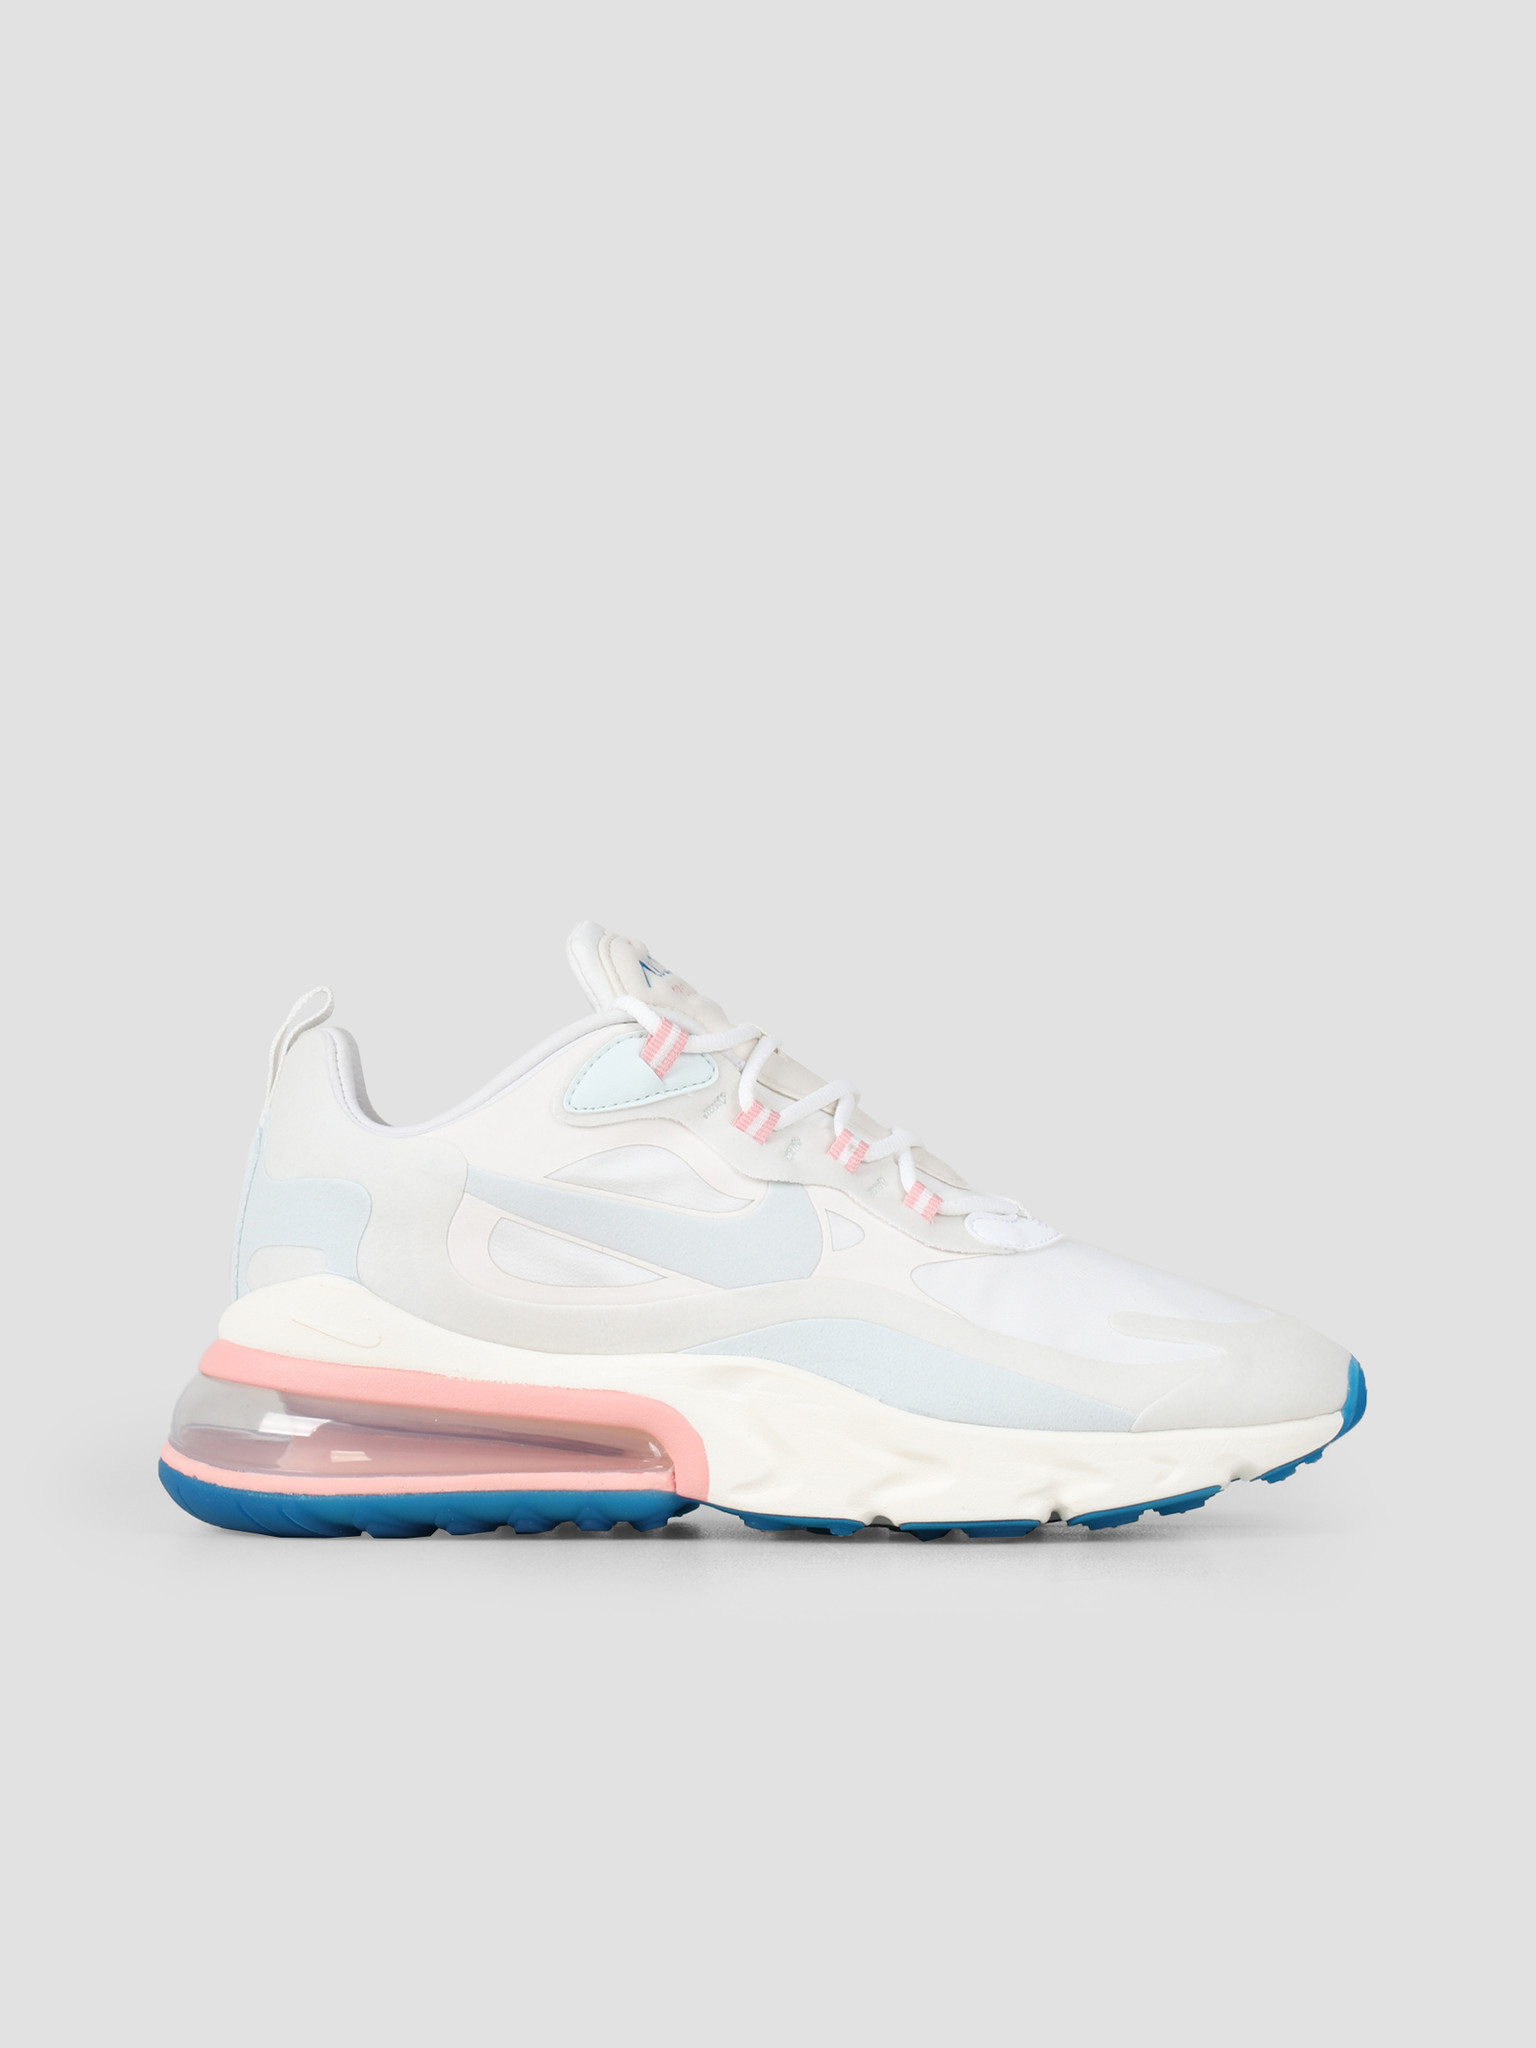 Nike Nike Air Max 270 React Summit White Ghost Aqua Phantom AO4971-100